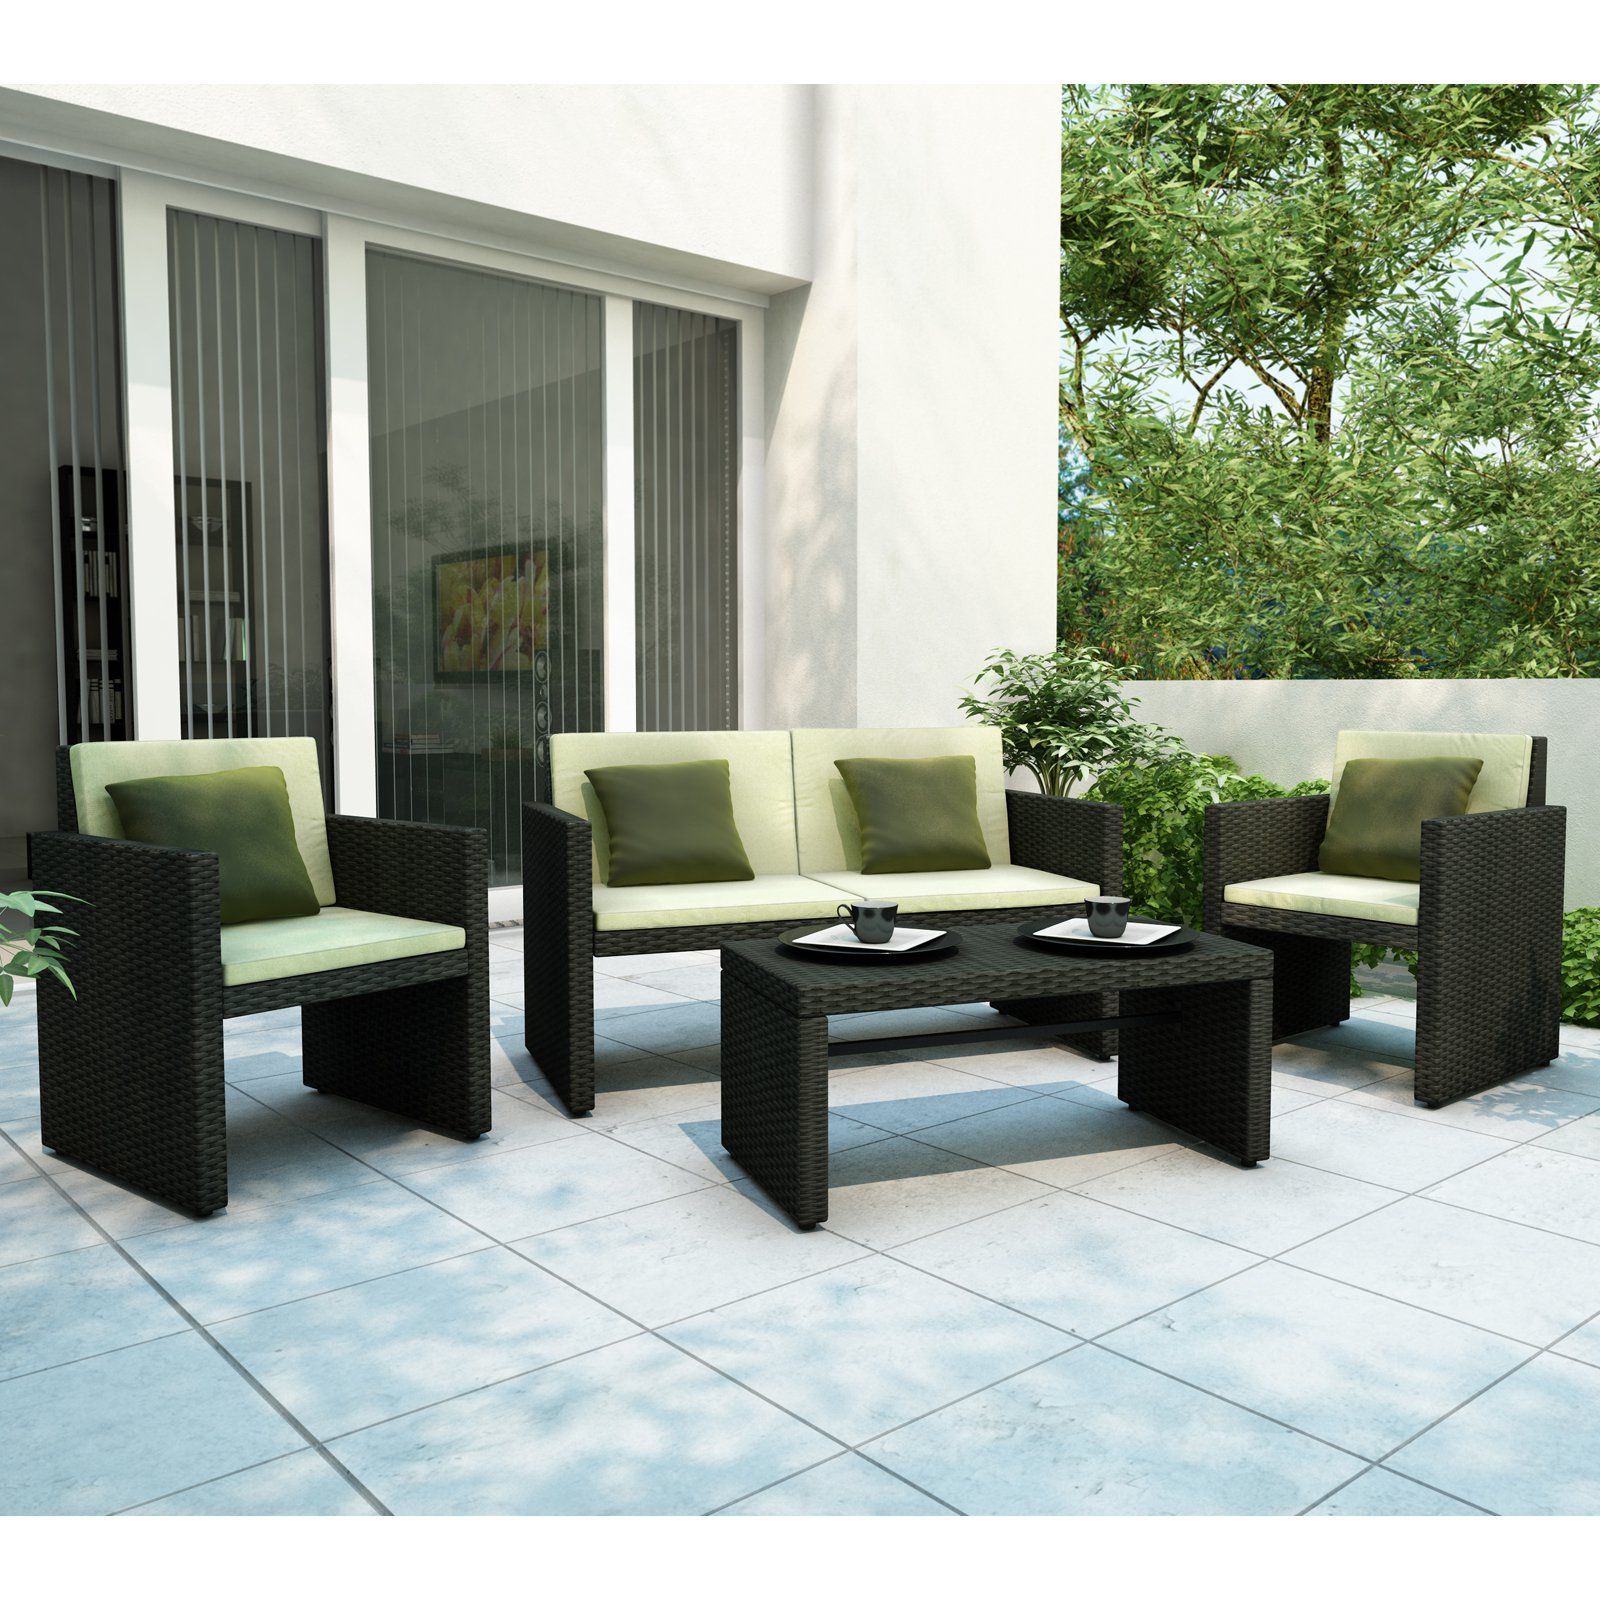 Sonax Creekside RTA Patio Lounge Set   $699 @hayneedle